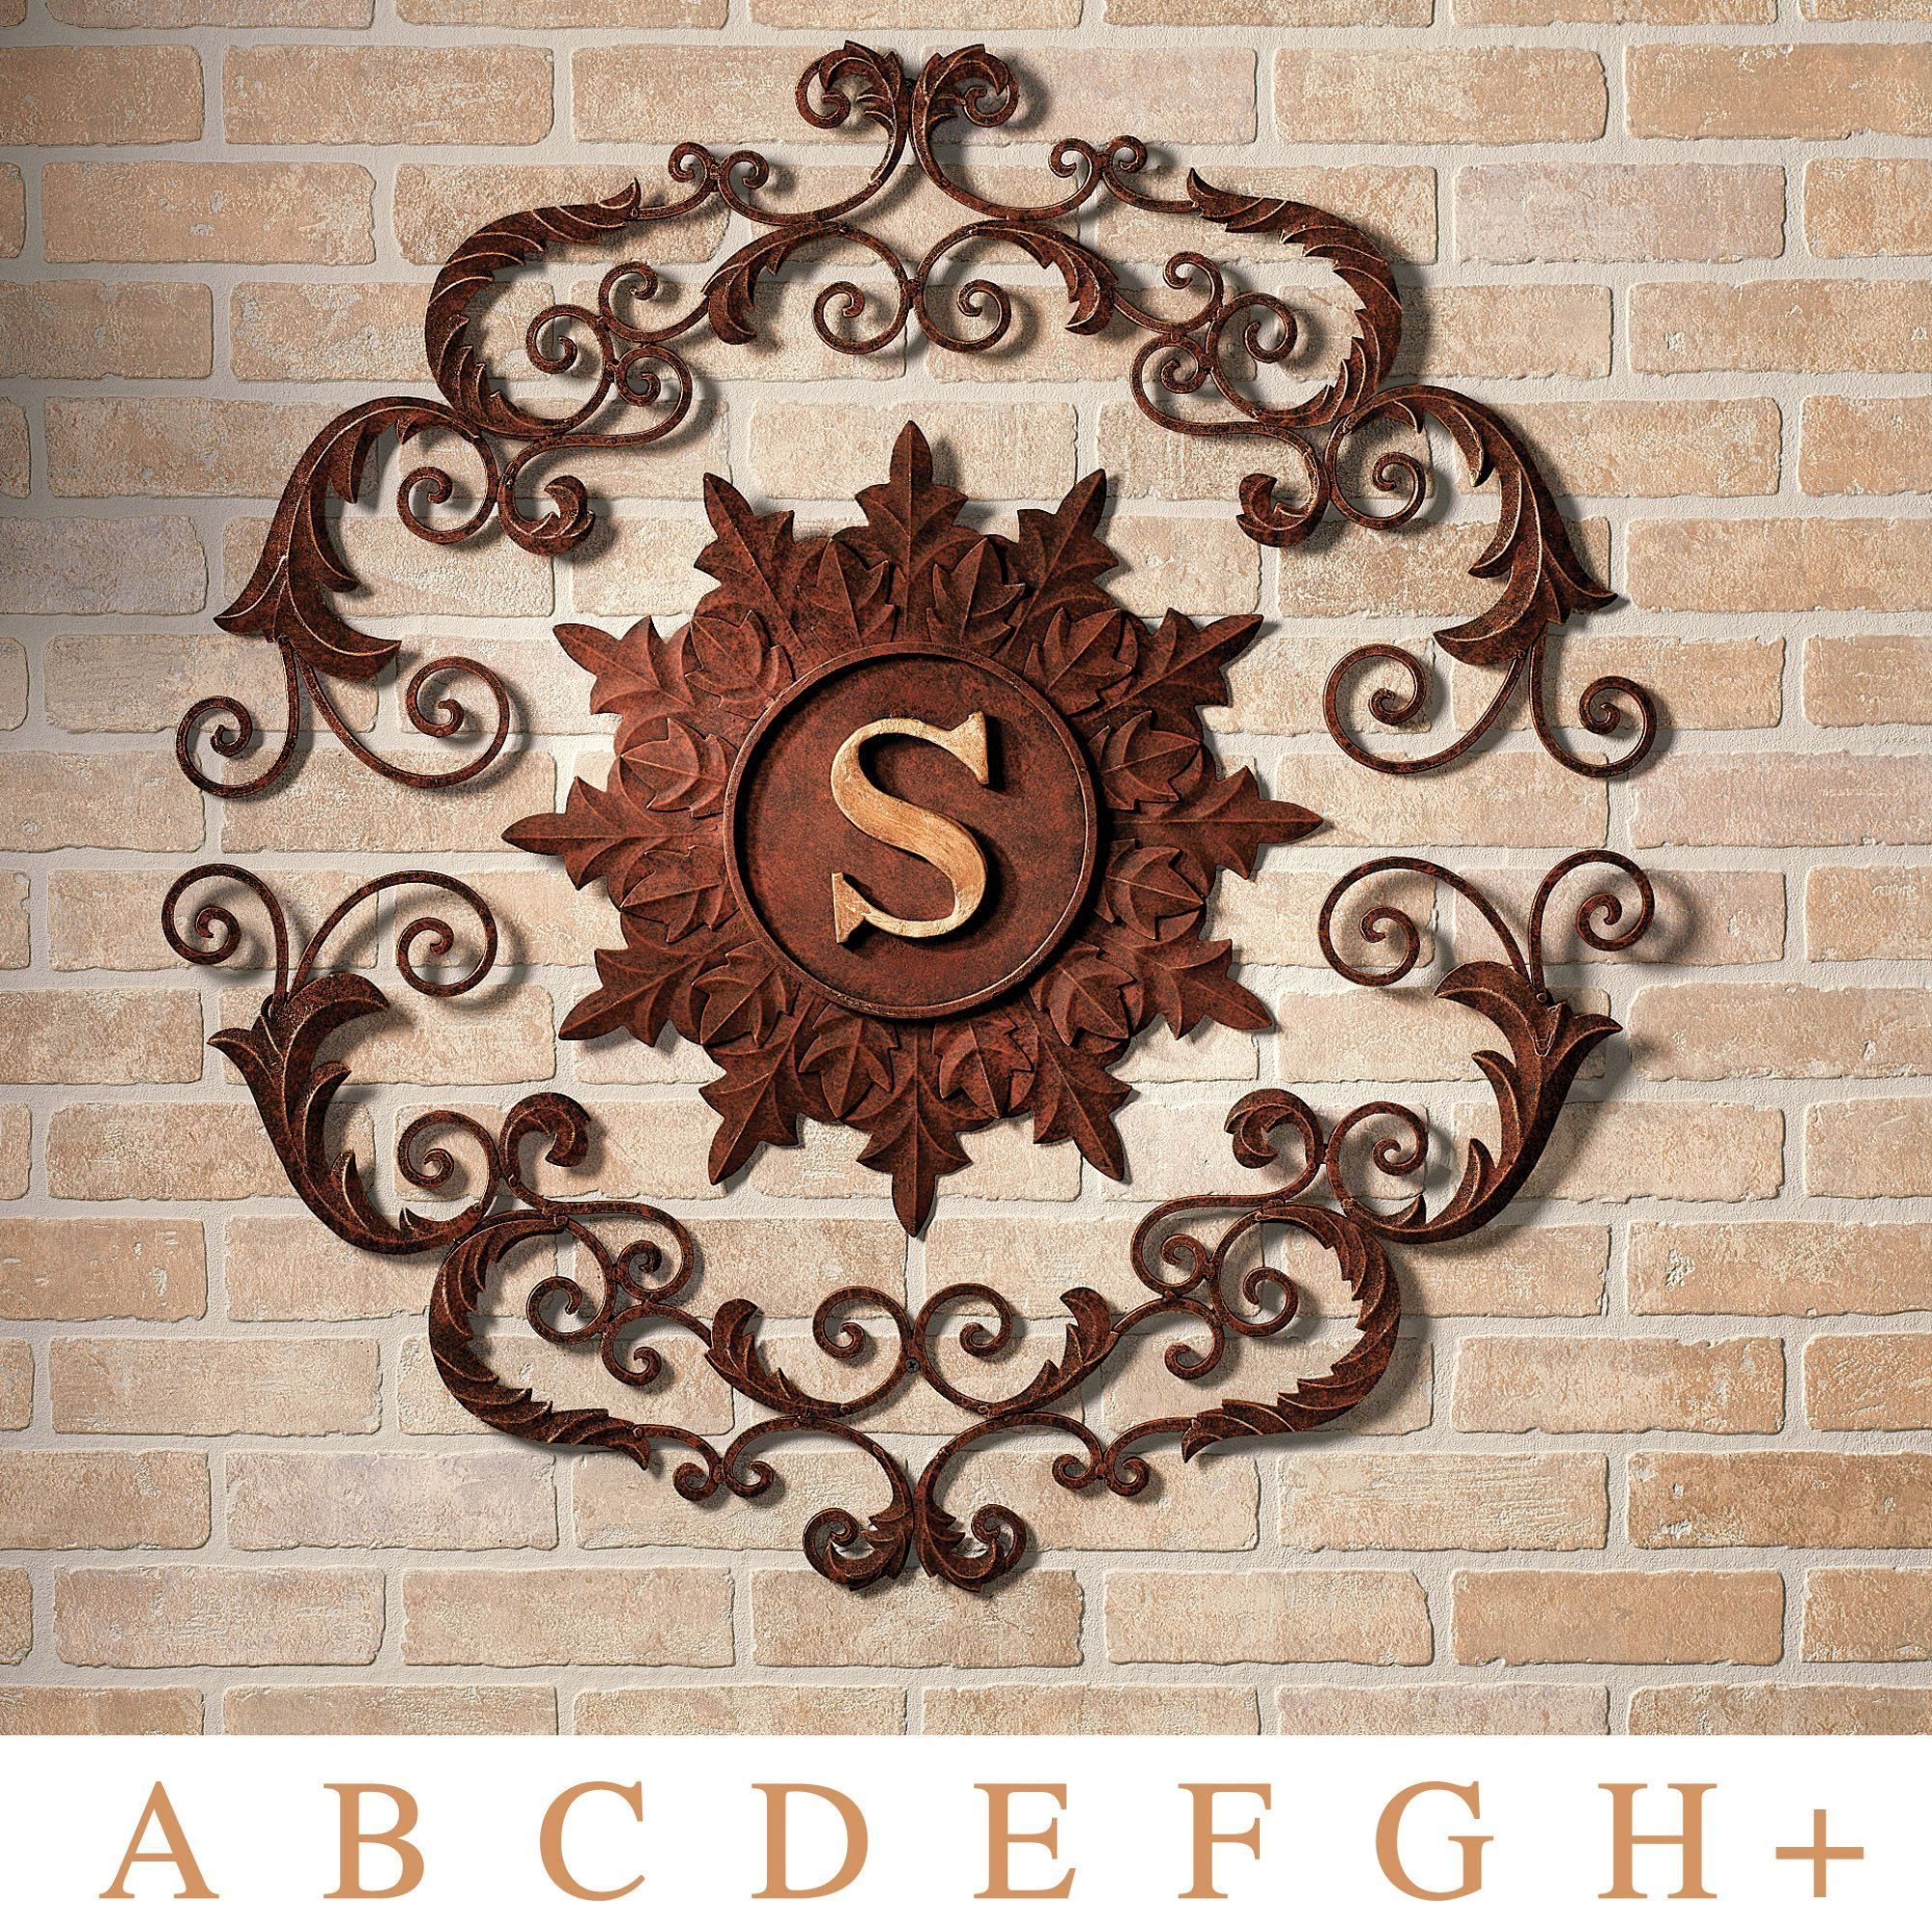 Metal Medallion Wall Art Kingston Monogram Metal Wall Grille